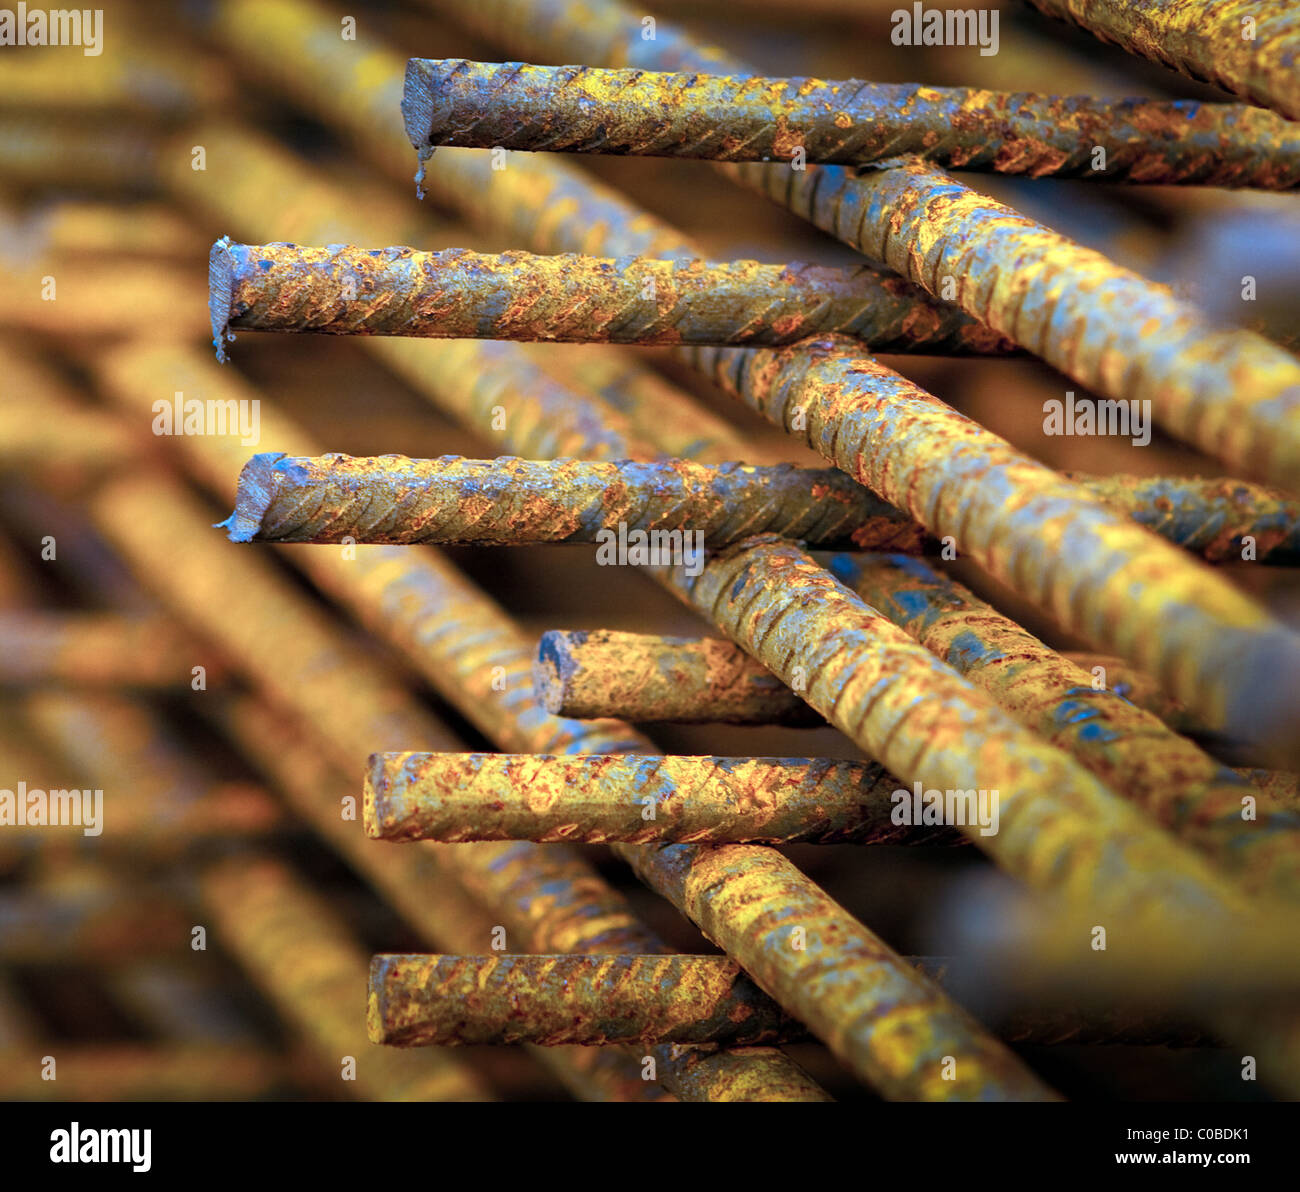 Reinforcing Concrete Bars Stockfotos & Reinforcing Concrete Bars ...